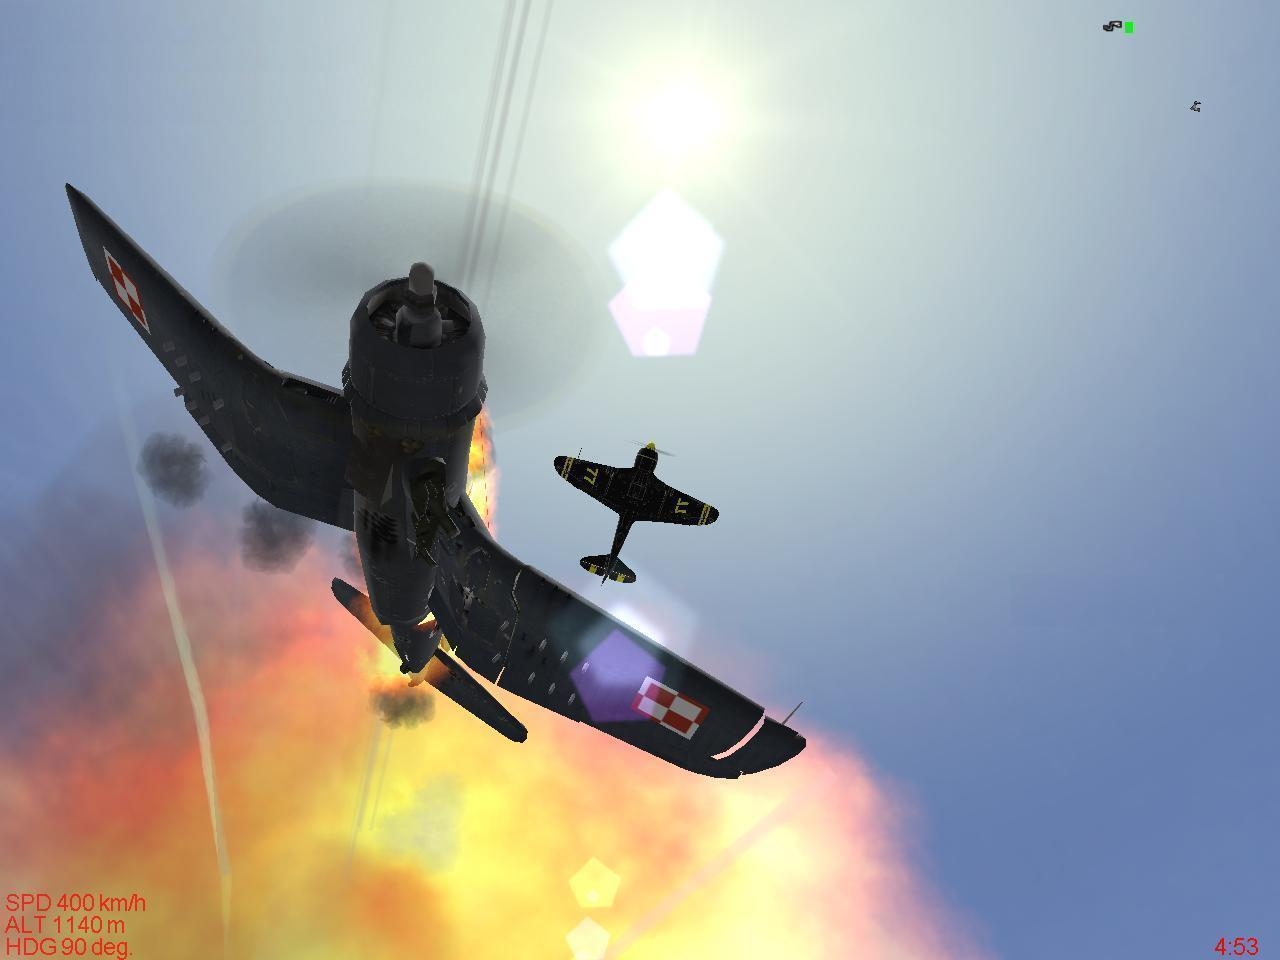 Me in my La-7 against a F-4U Corsair, Filled the guy with bullets till the F-4U explode ... this all done in IL2 Sturmovik - Photo 16682